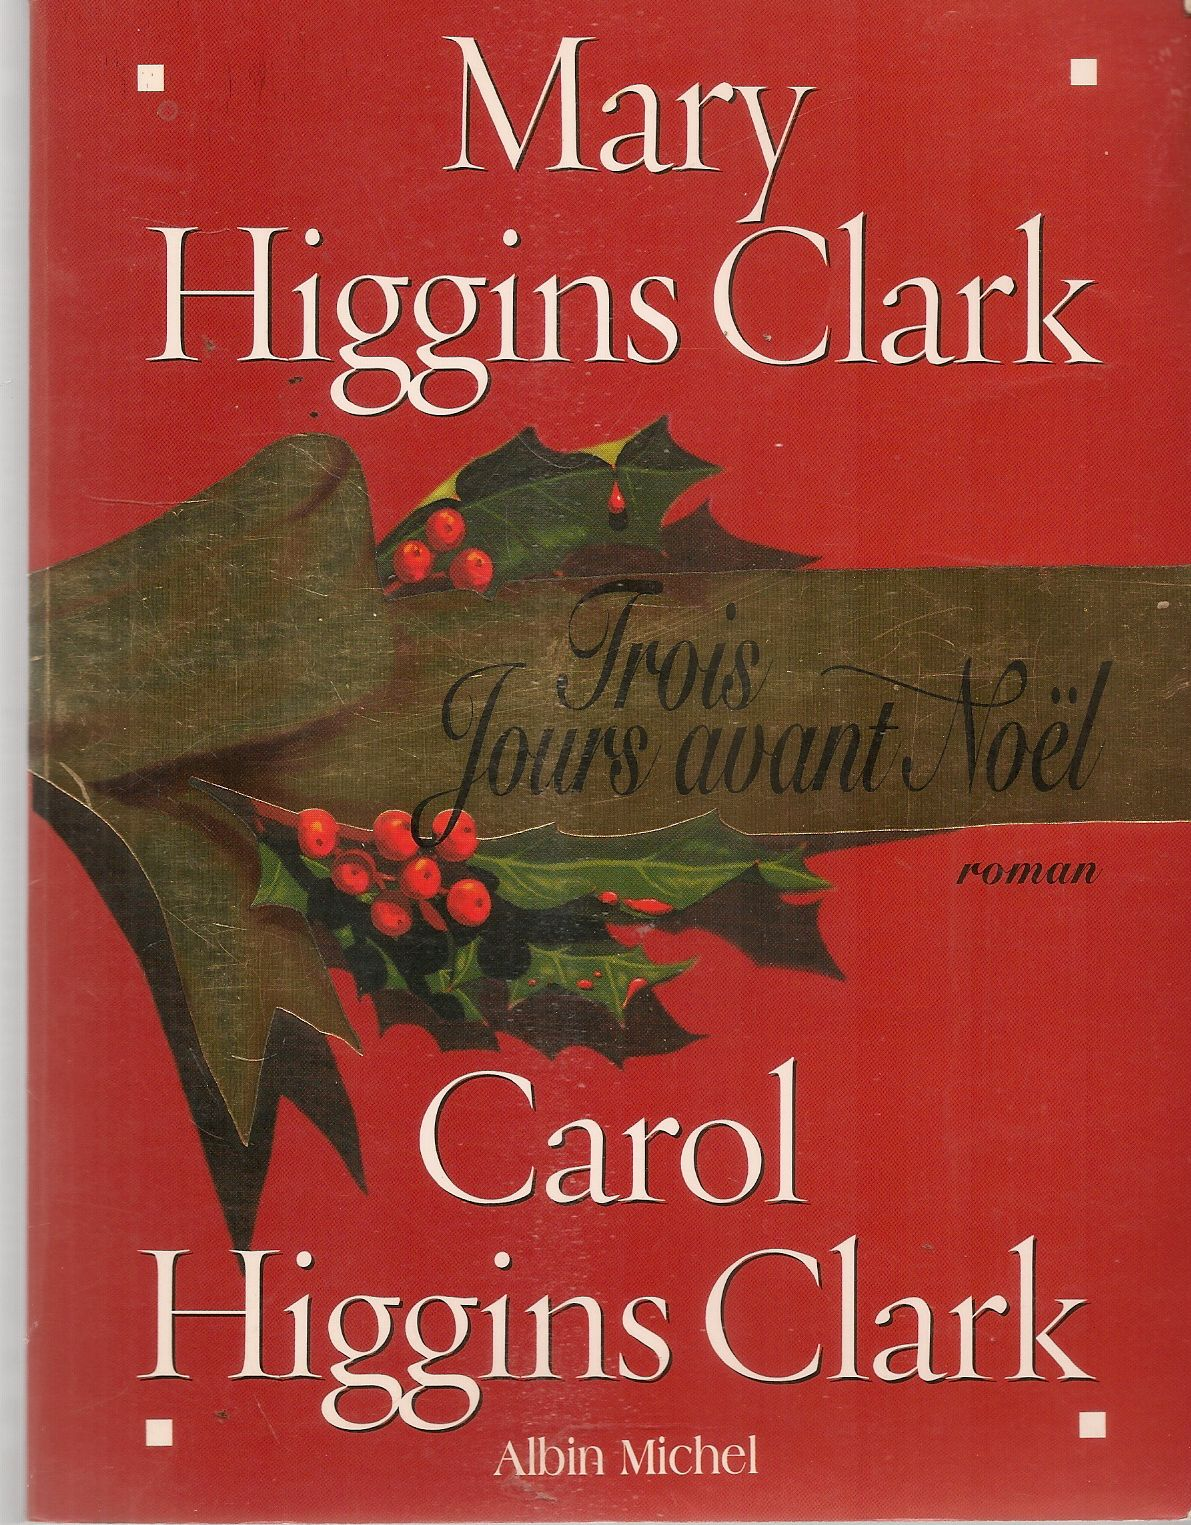 TROIS JOURS AVANT NOEL - MARY and CAROL HIGGINS CLARK - FRENCH TEXT